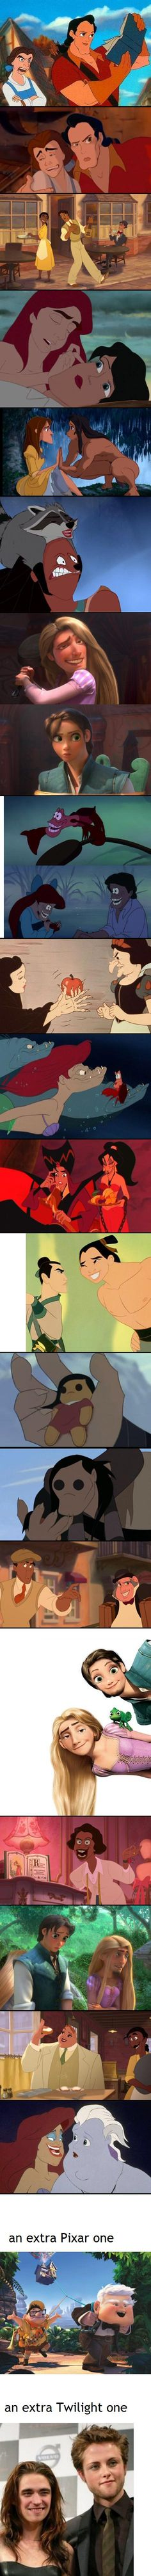 I'm not a huge Disney fan but these literally made me laugh out loud.